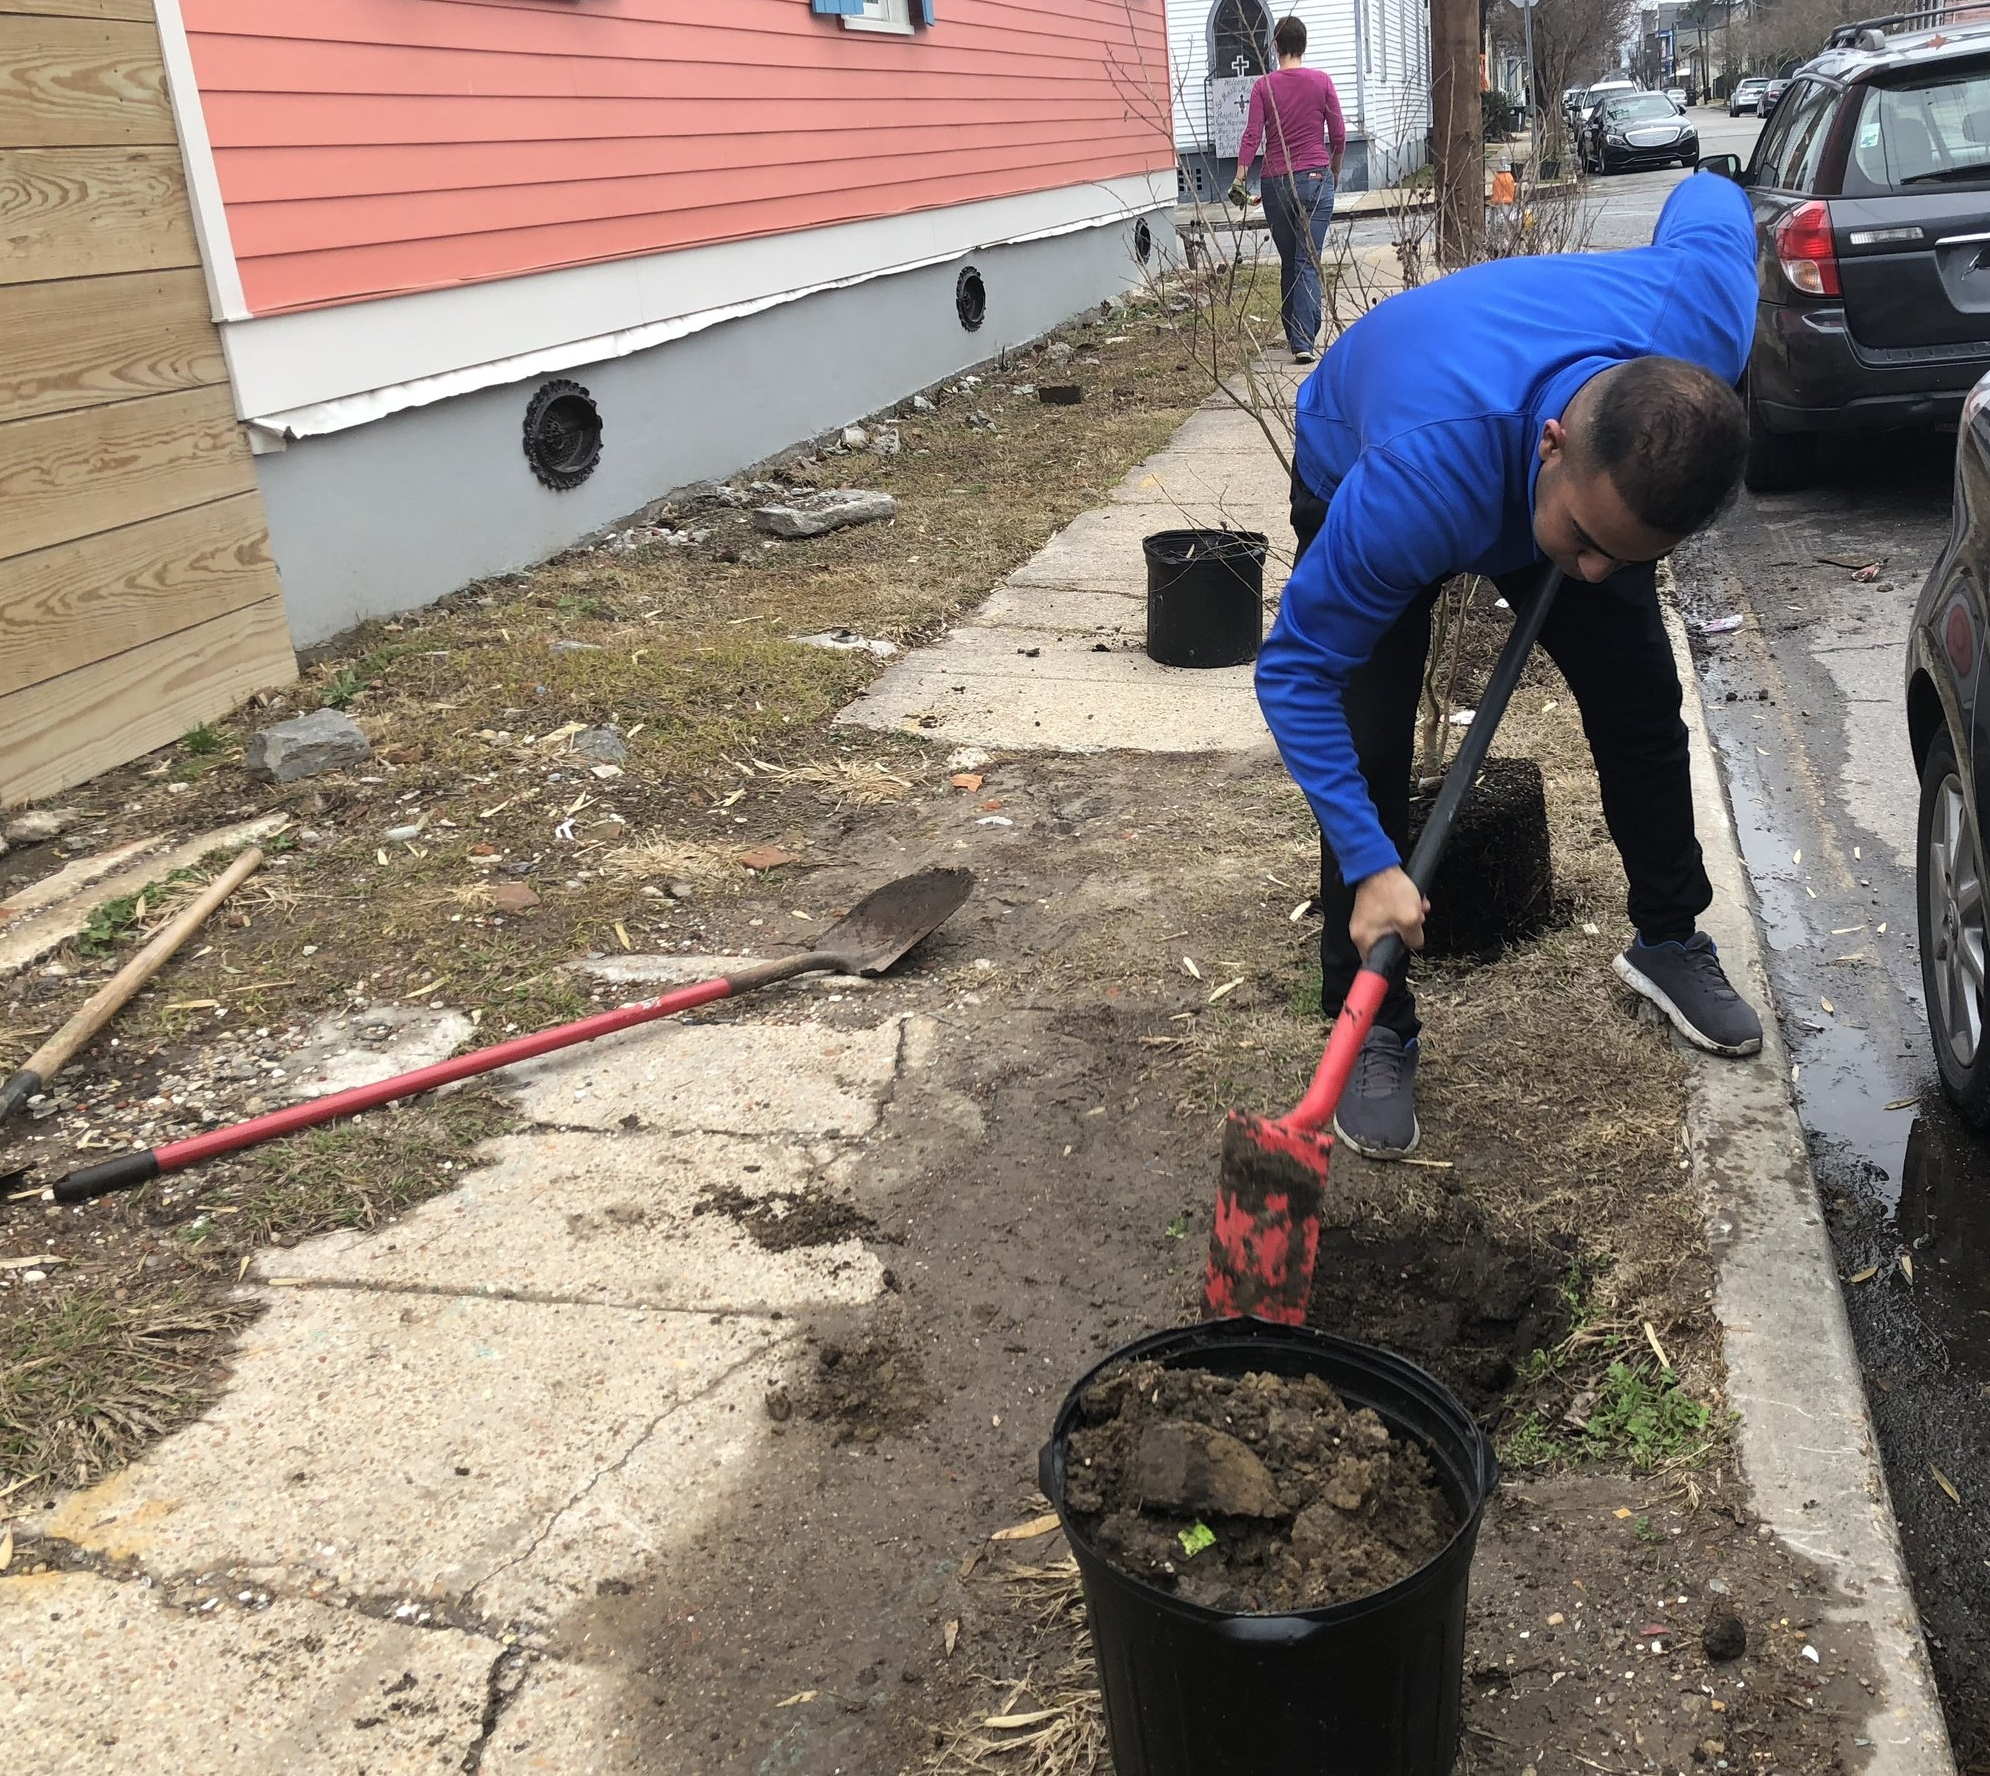 Neighbors pitching in 1/29/18 on the 1000 block of n villere st